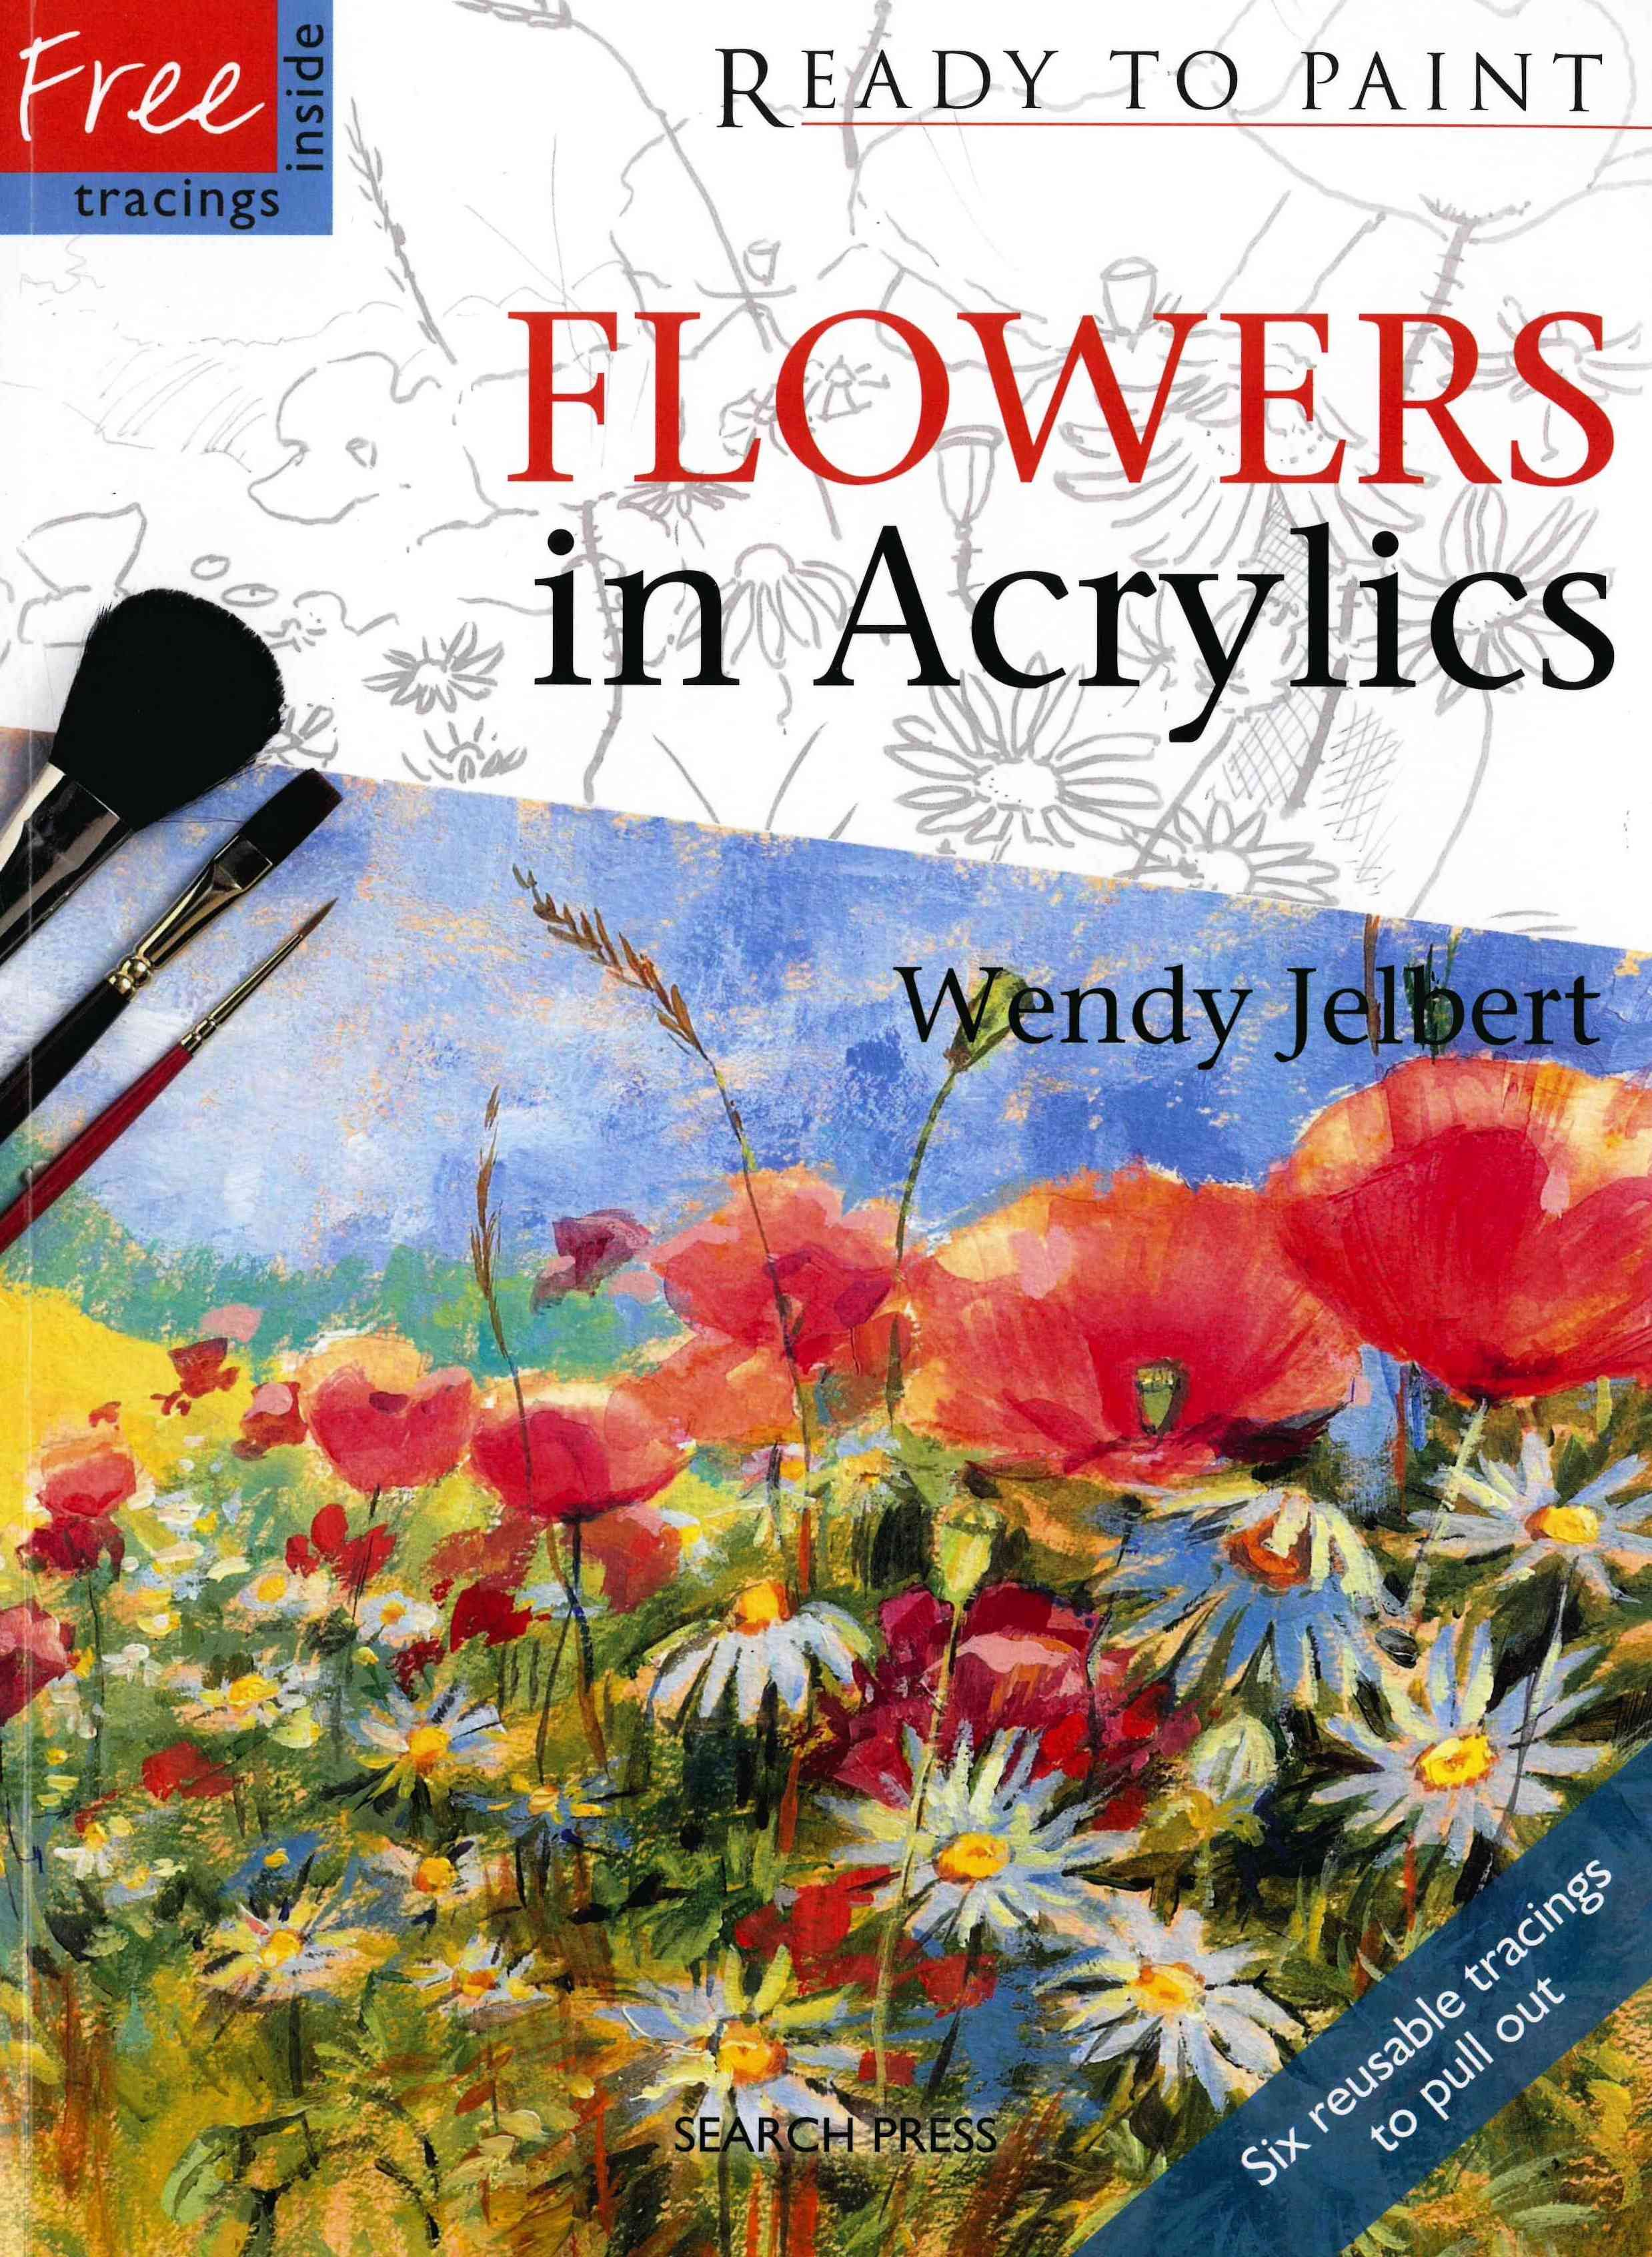 A Guide To Painting Flowers It Helps You To Paint Portraits Of